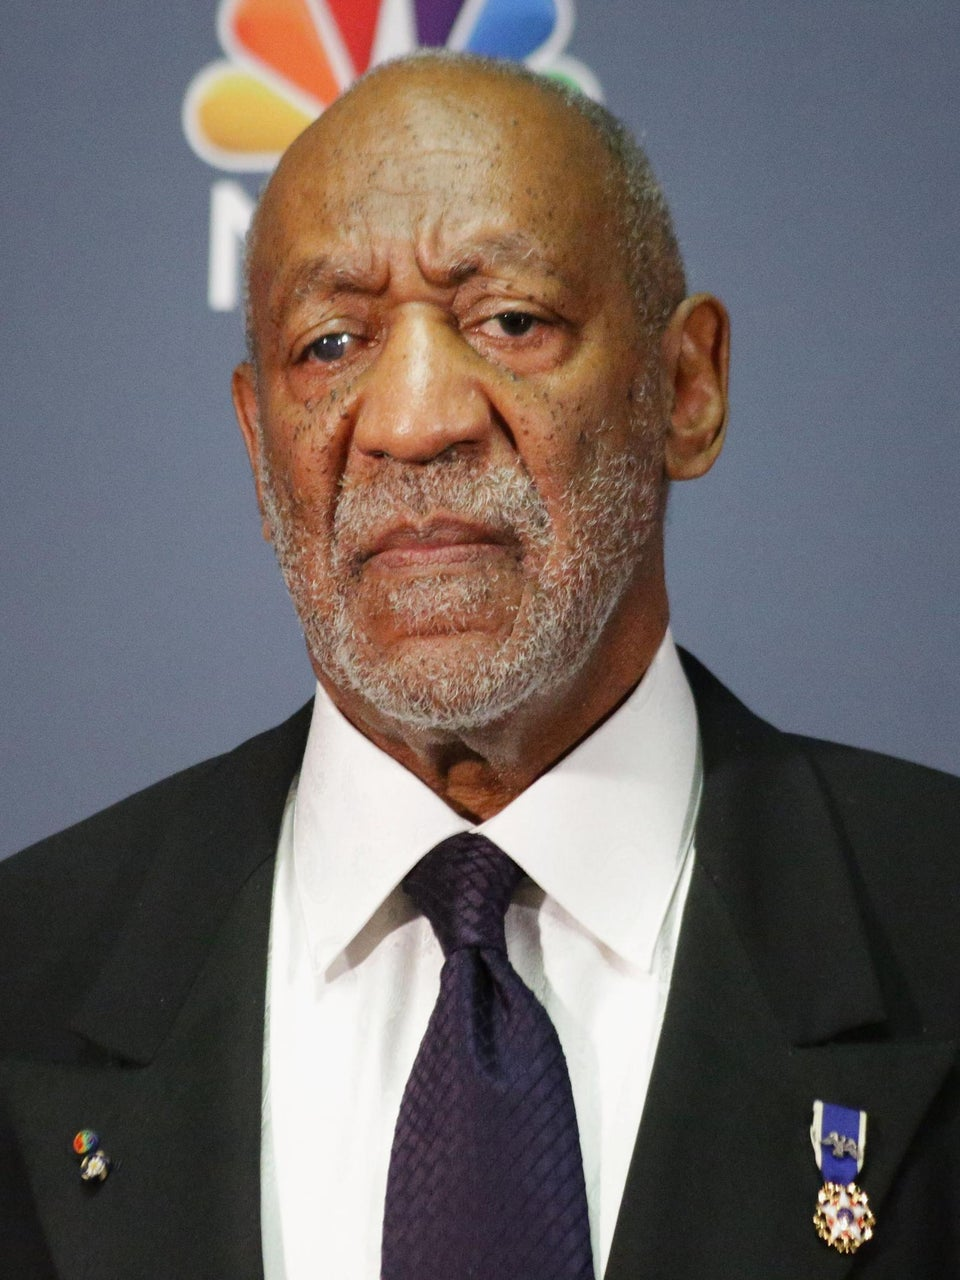 Prosecution Could Follow Latest Sexual Assault Allegation Against Bill Cosby